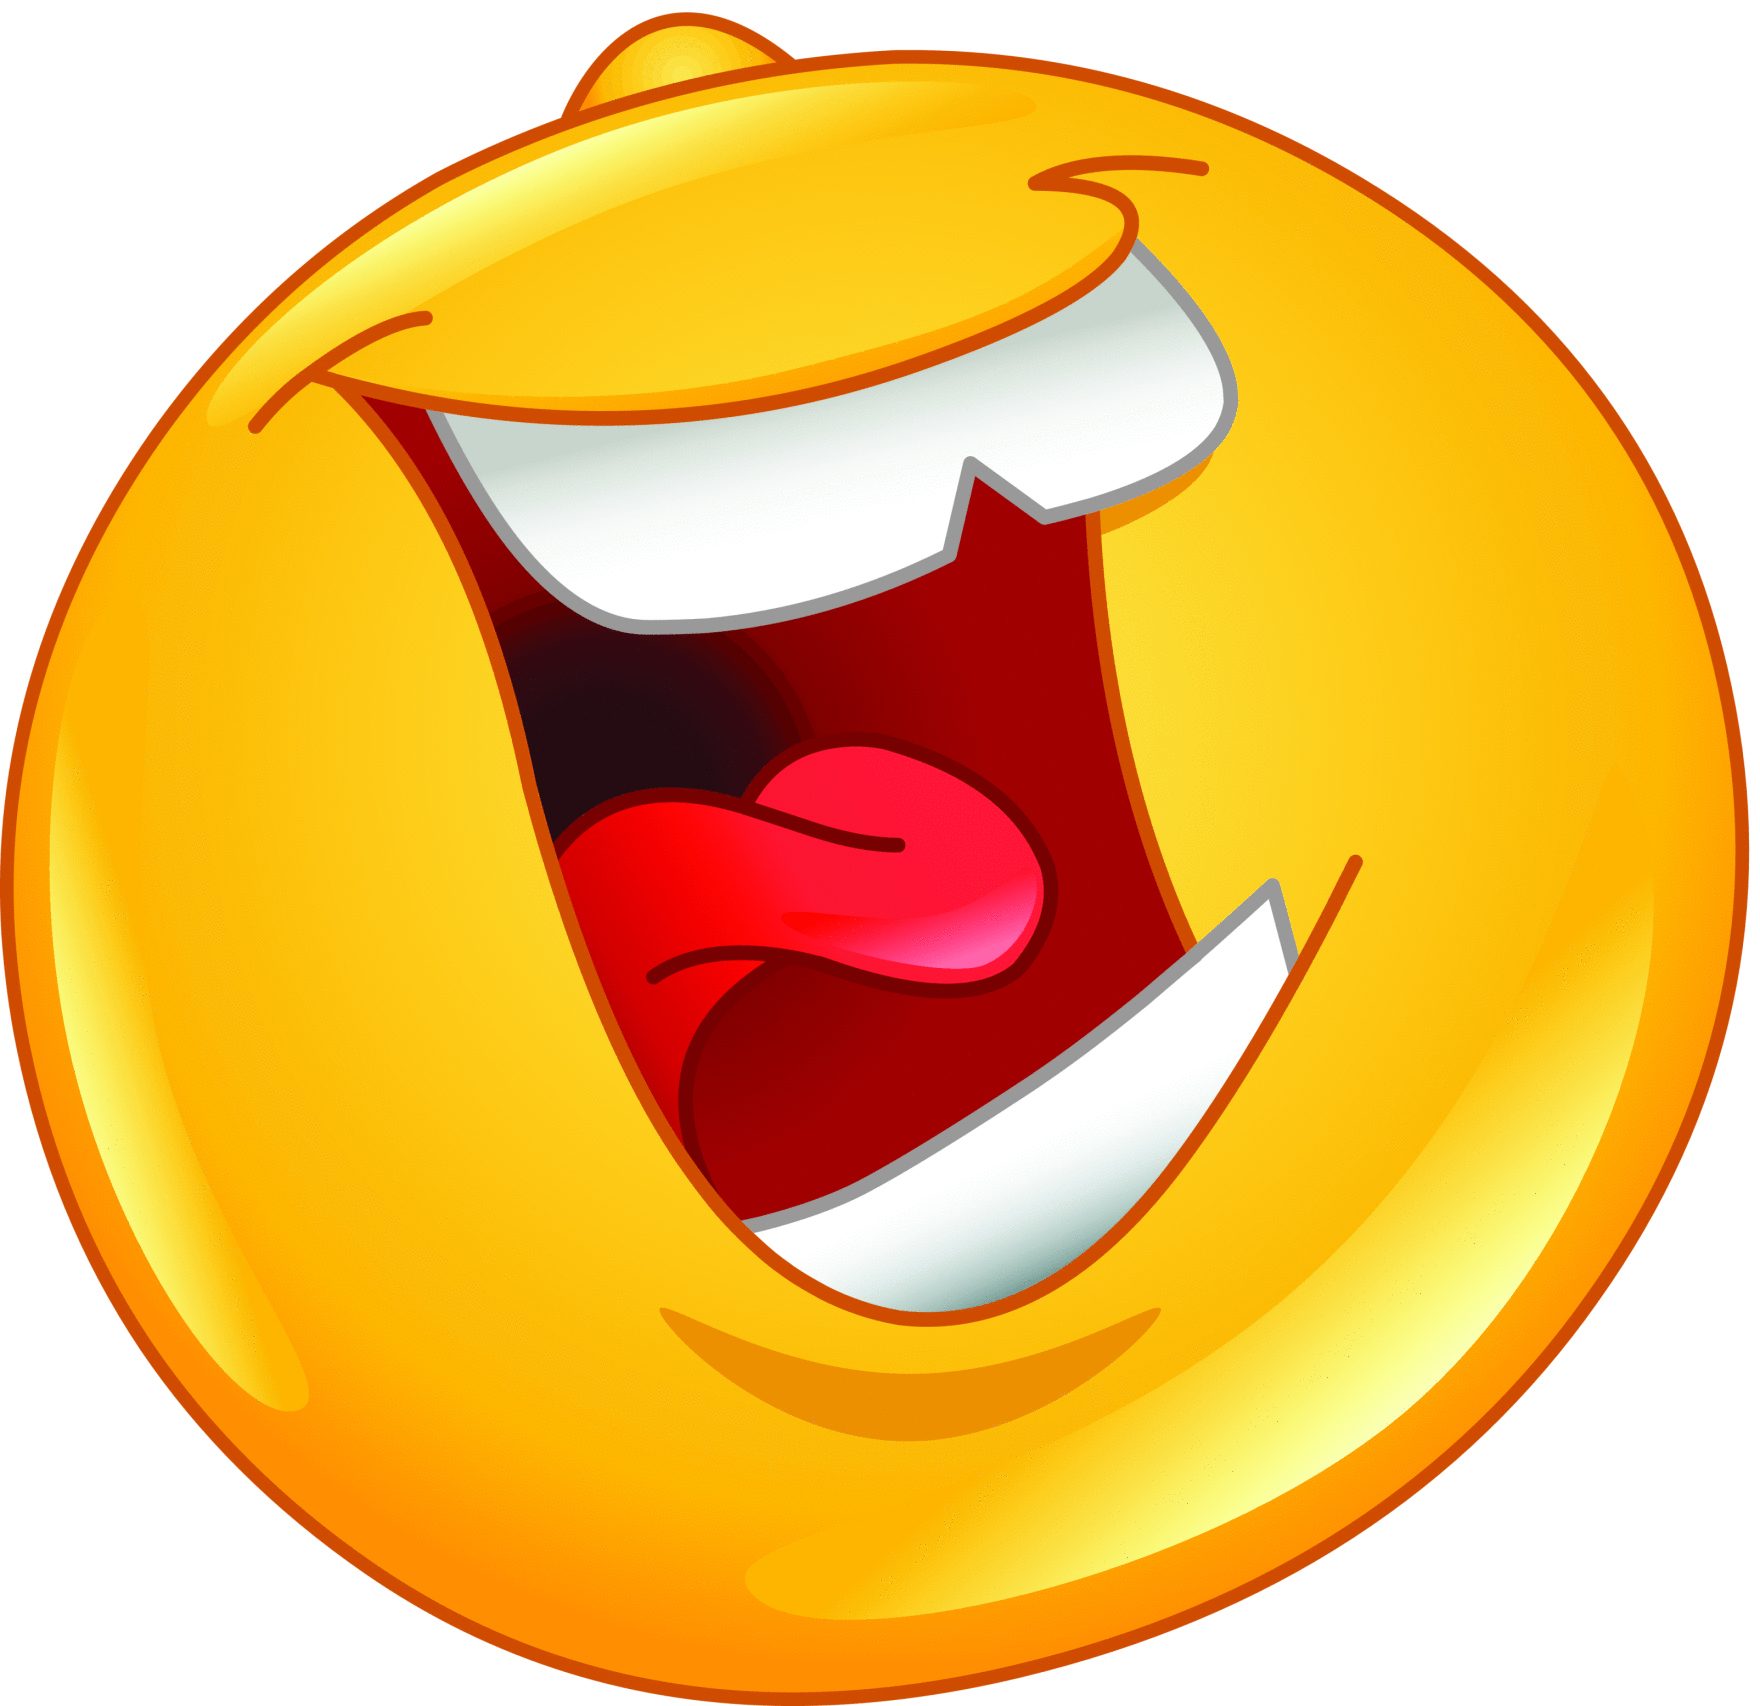 Laughing Face Clip Art Laughing clip art